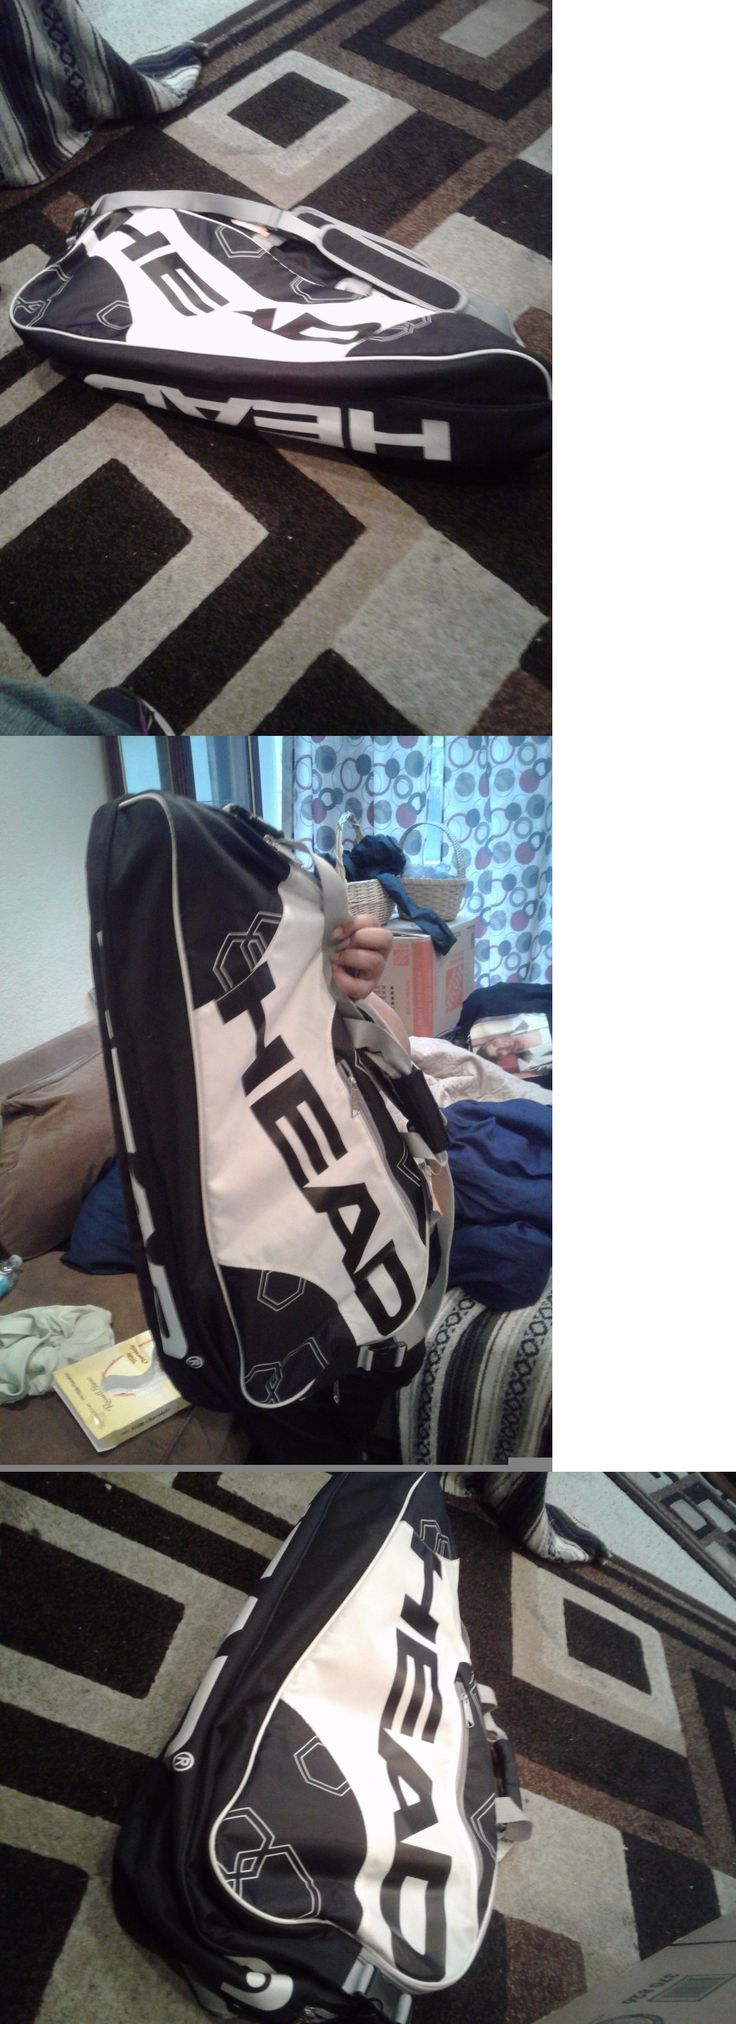 Bags 20869: Head Tennis Bag Elite Combi Black White Good Condition, Sales Tag Attached. -> BUY IT NOW ONLY: $40 on eBay!